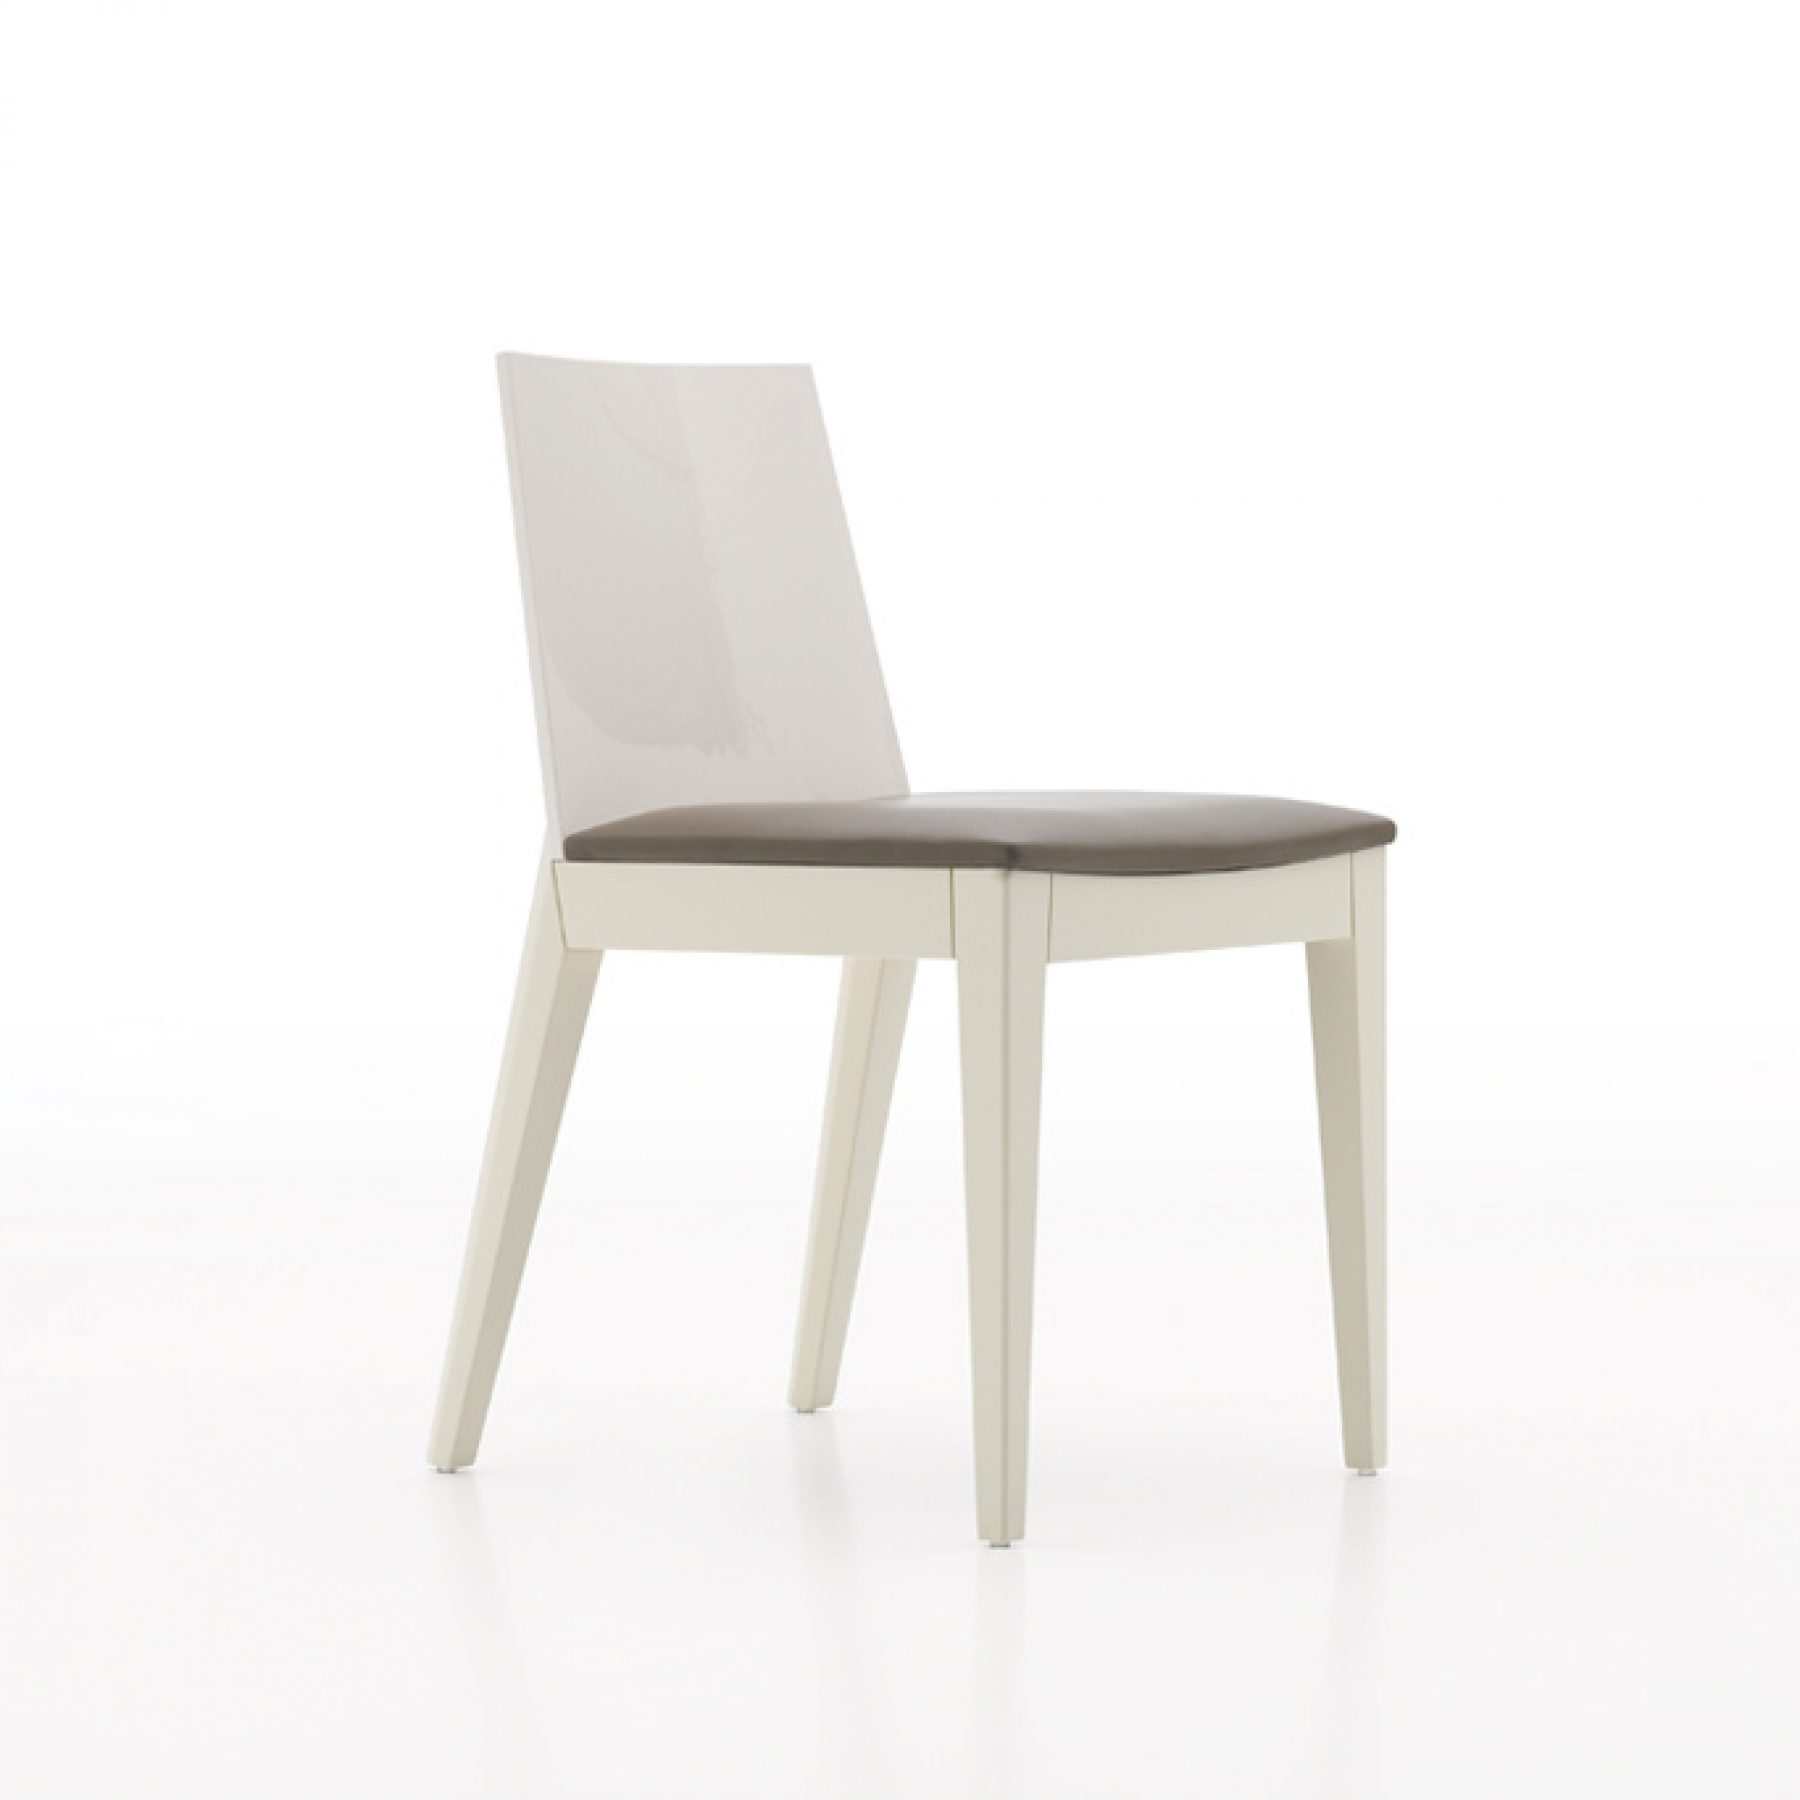 AVA DINING CHAIR GLOSSY BEIGE WITH LIGHT BROWN LEATHER